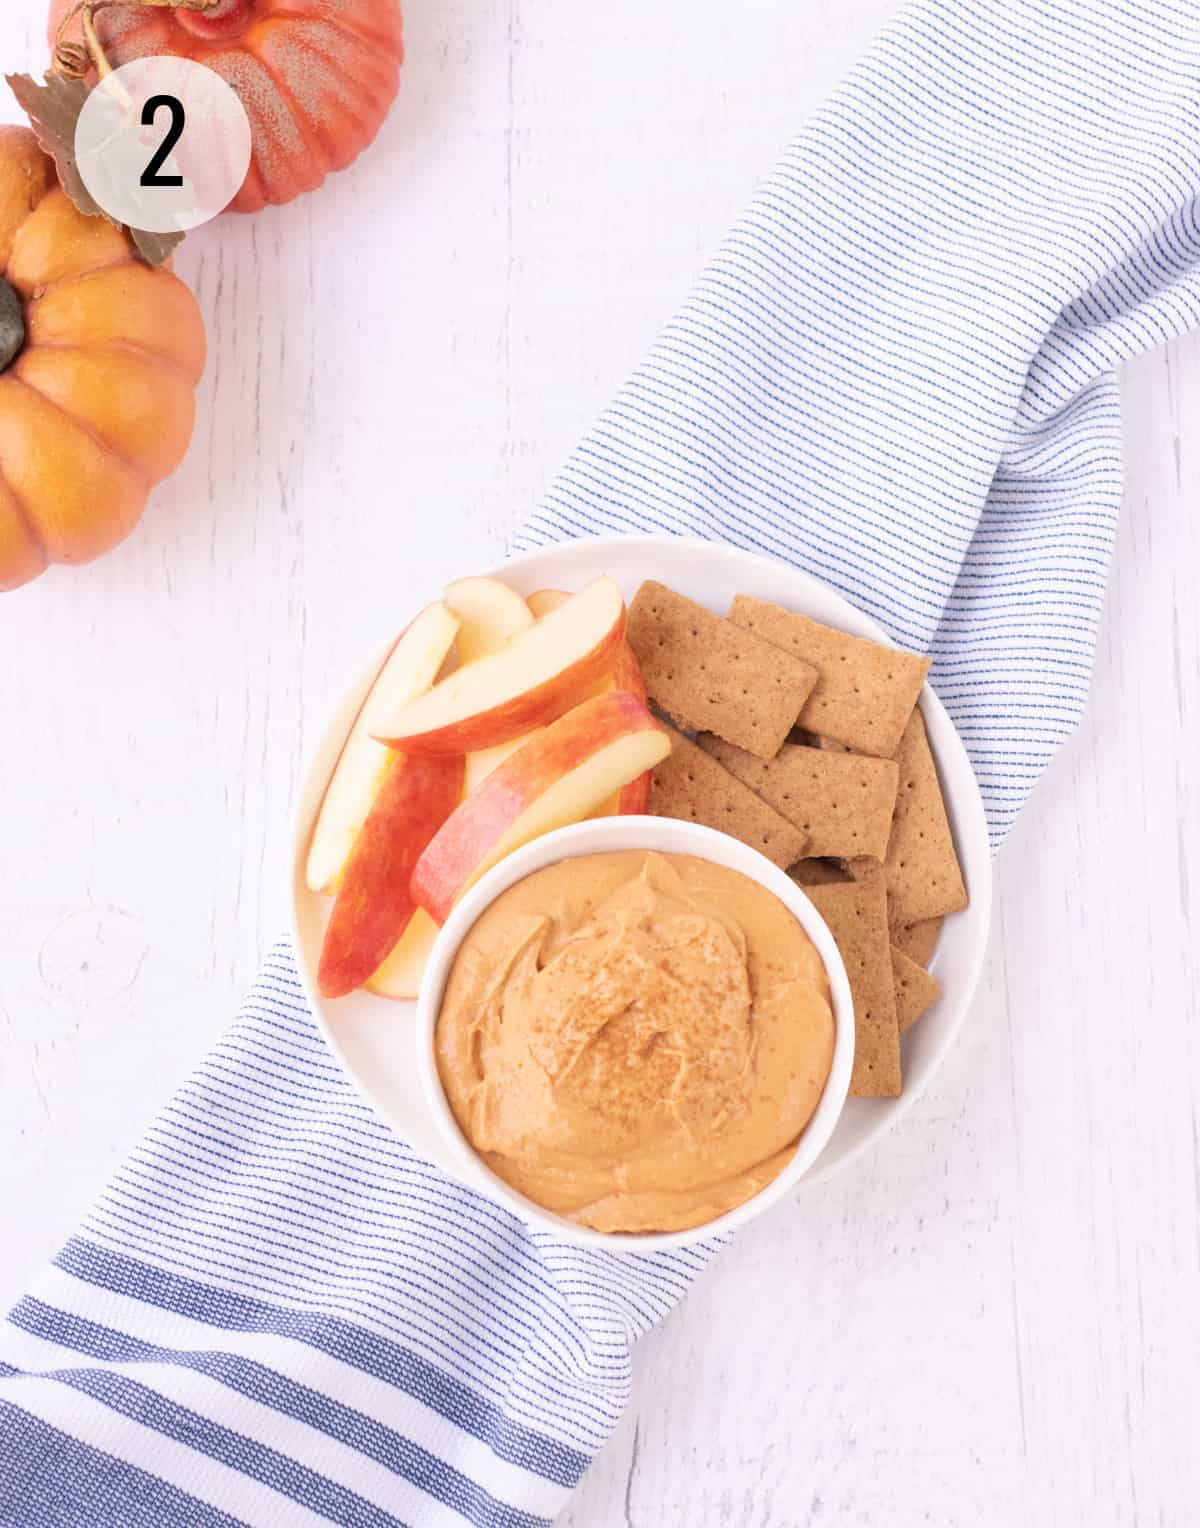 Top view of a bowl of pumpkin cheesecake dip sprinkled with ground cinnamon on a plate with apple slices and graham crackers on a blue and white striped towel with pumpkins in upper left corner.